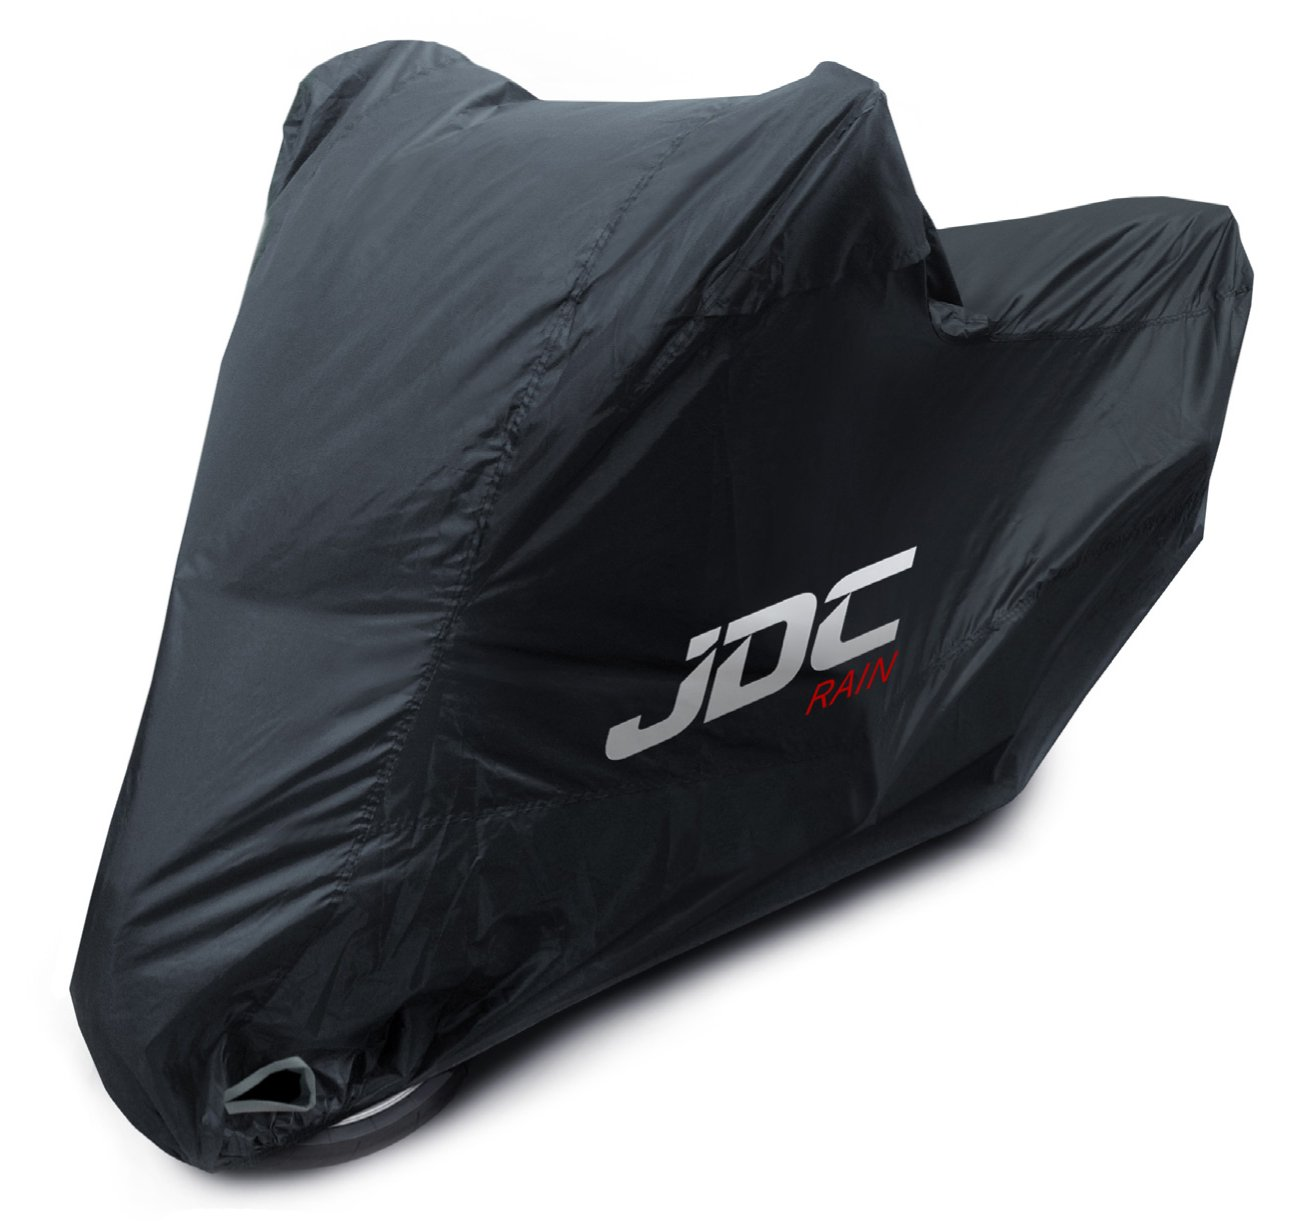 JDC Motorcycle Cover Waterproof - Black - RAIN - L